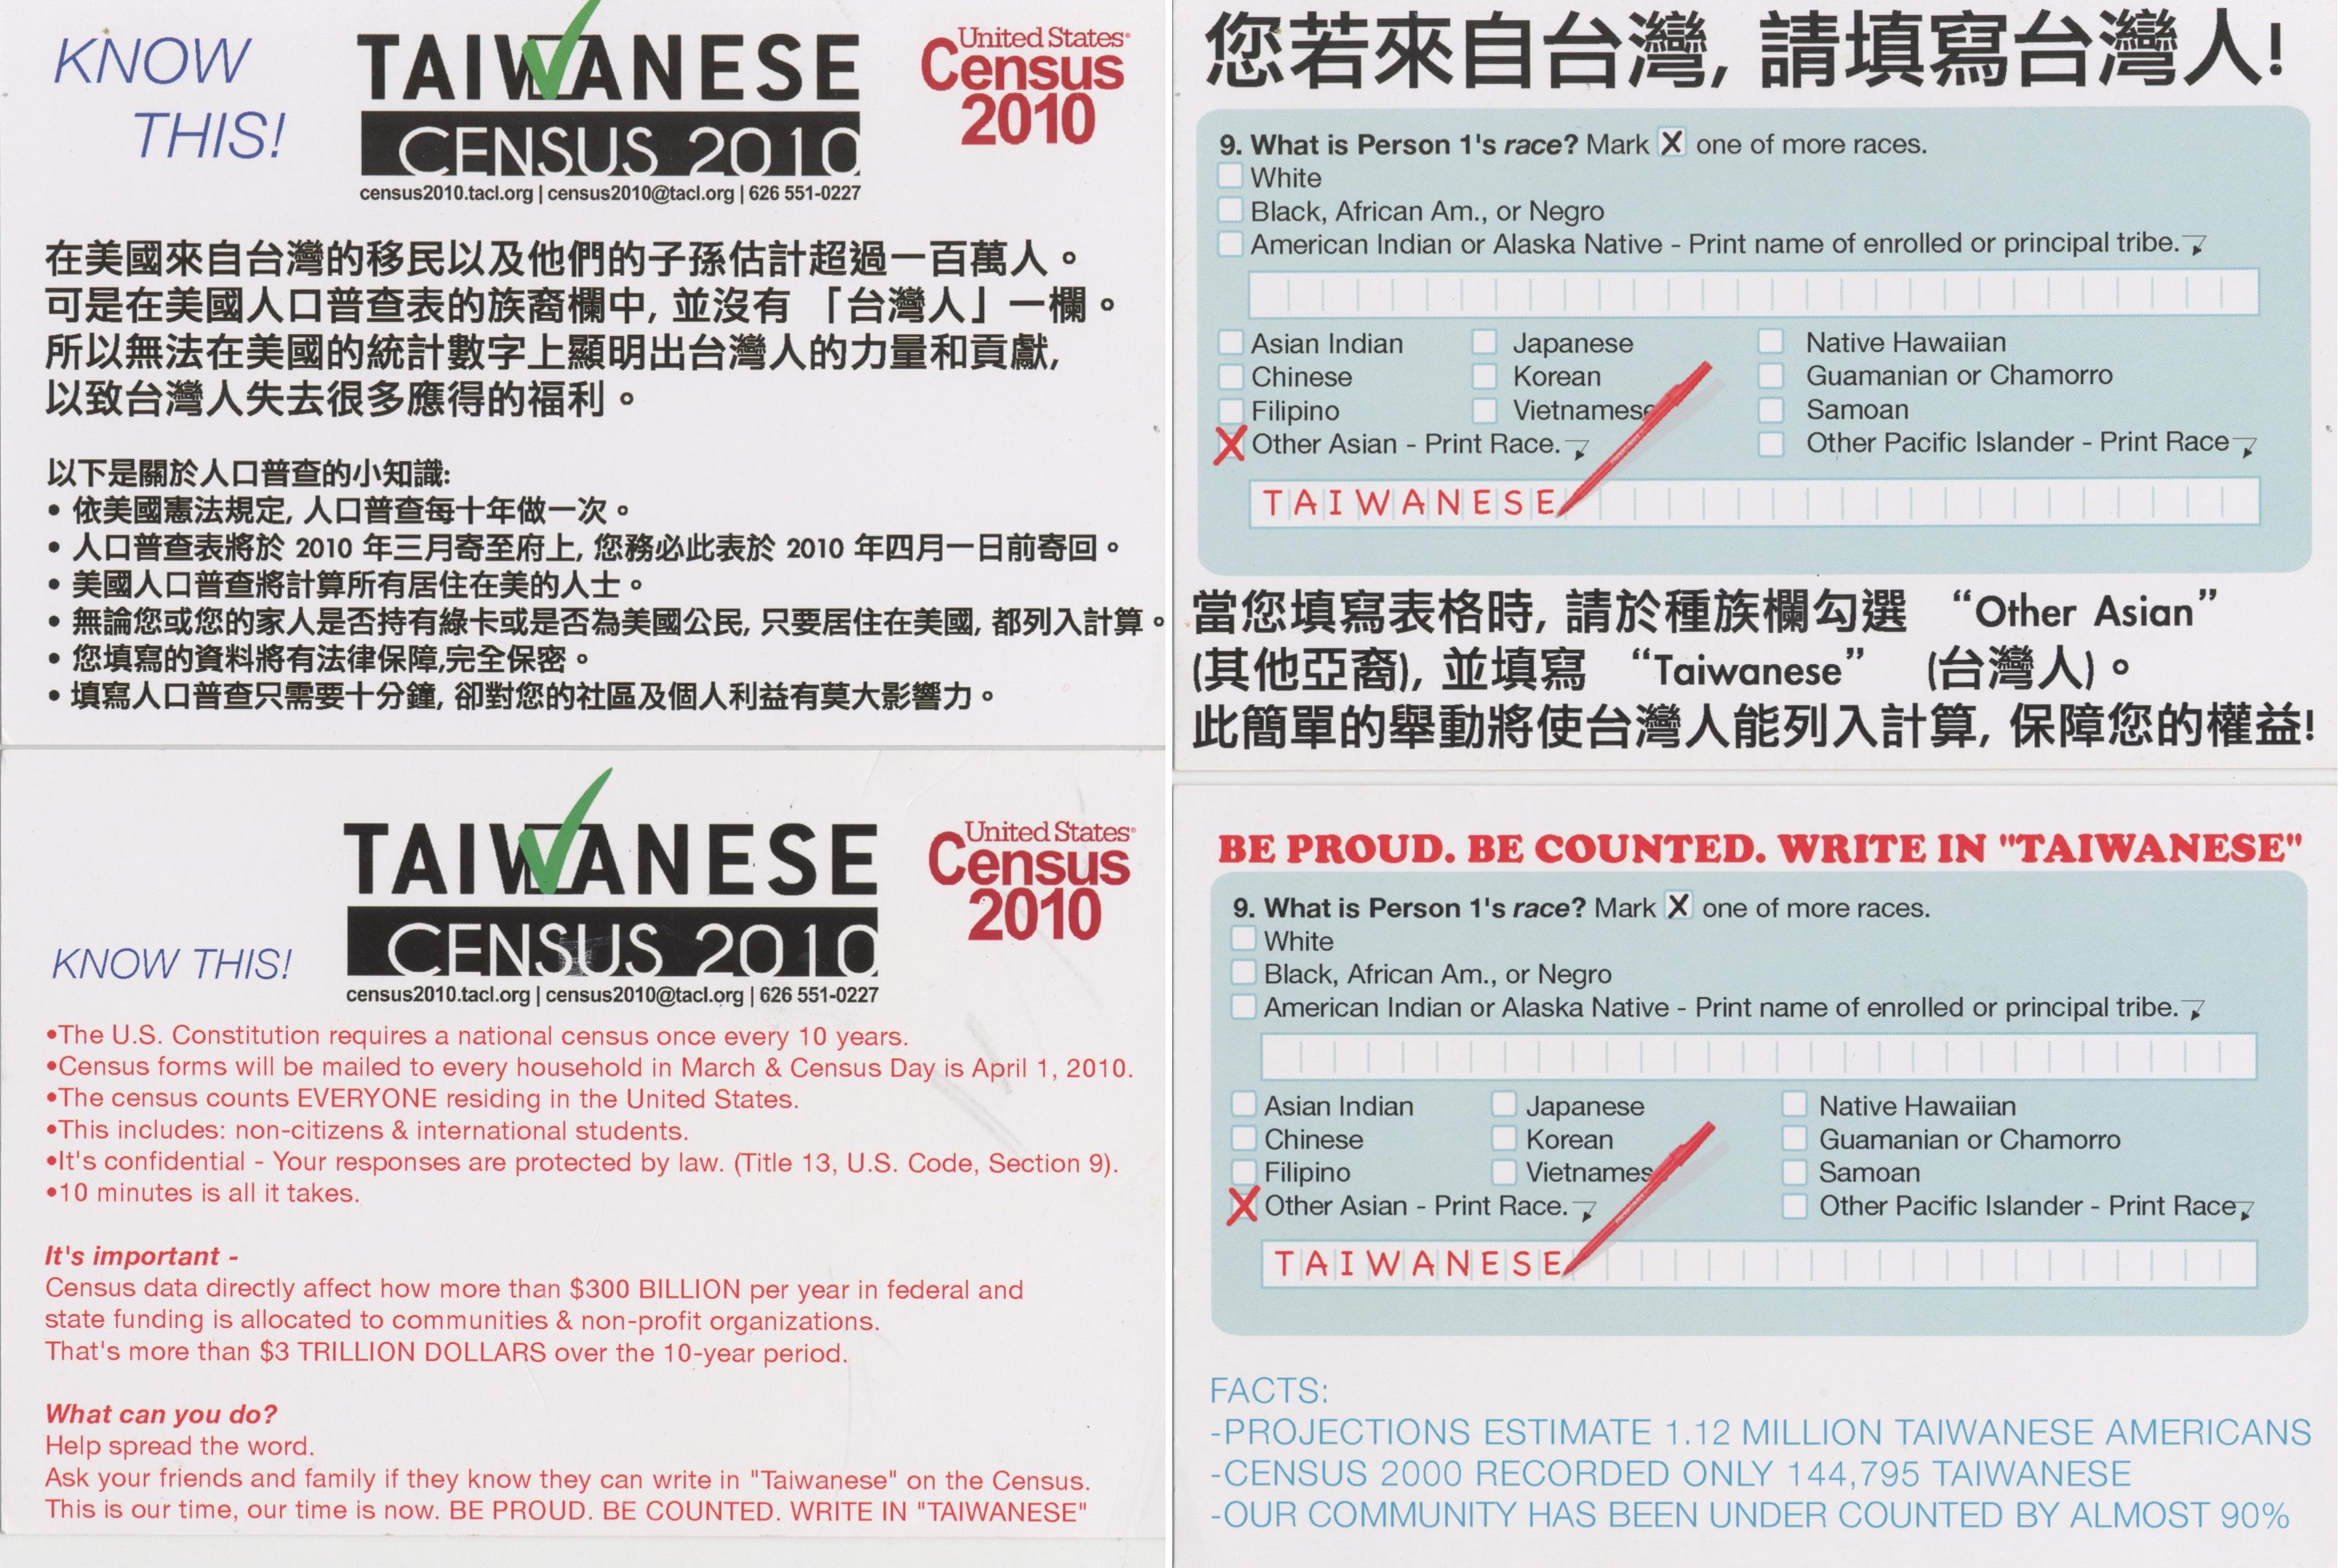 12. Taiwanese American Citizens League (TACL) Census 2010